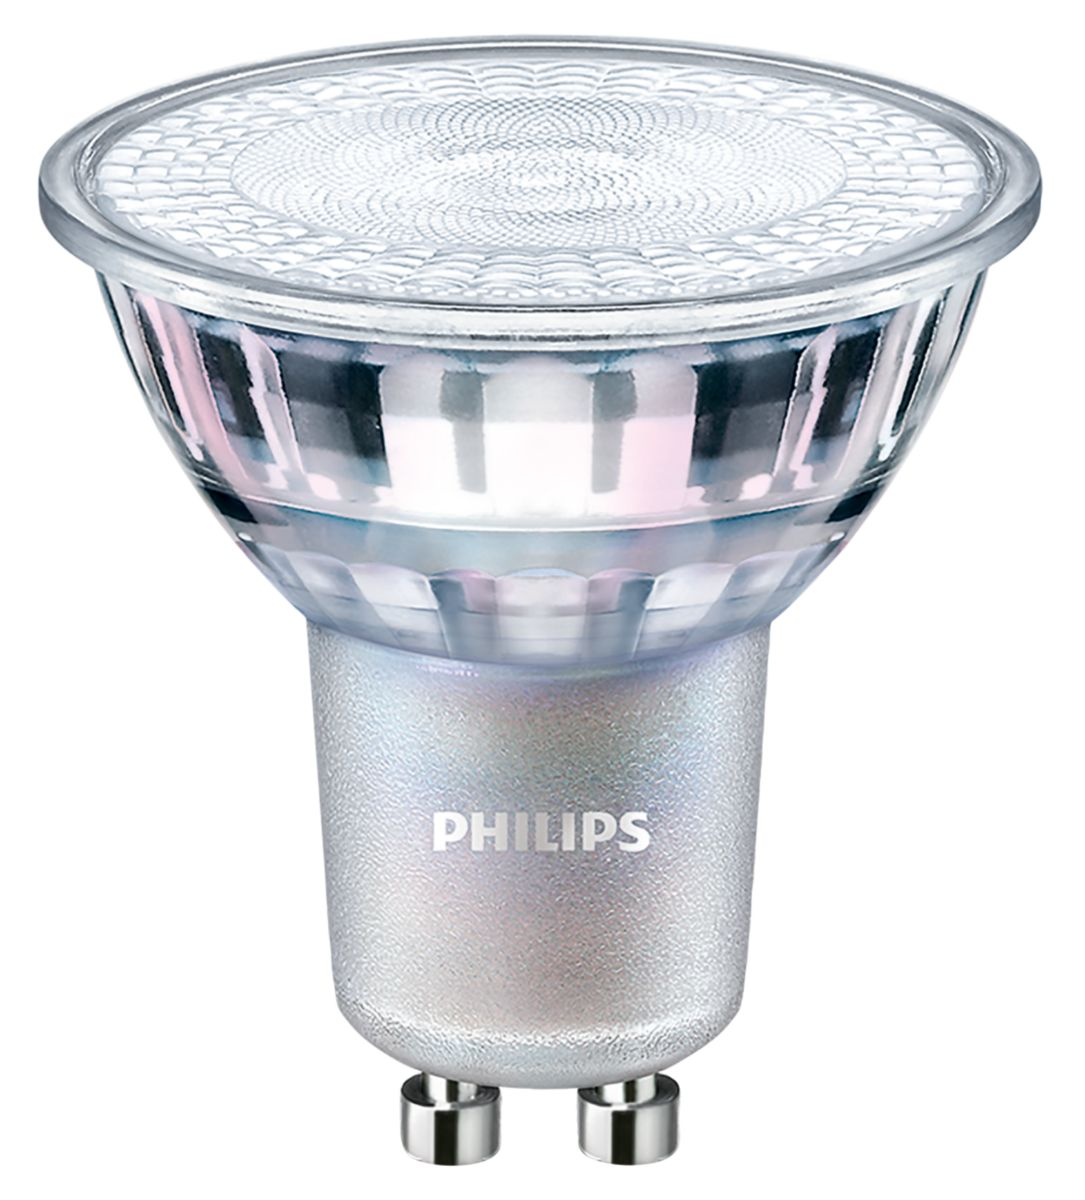 PHILIPS GU10 led lamp dimbaar 3.7W-35W warmwit 2700 kelvin 36gr CRI90